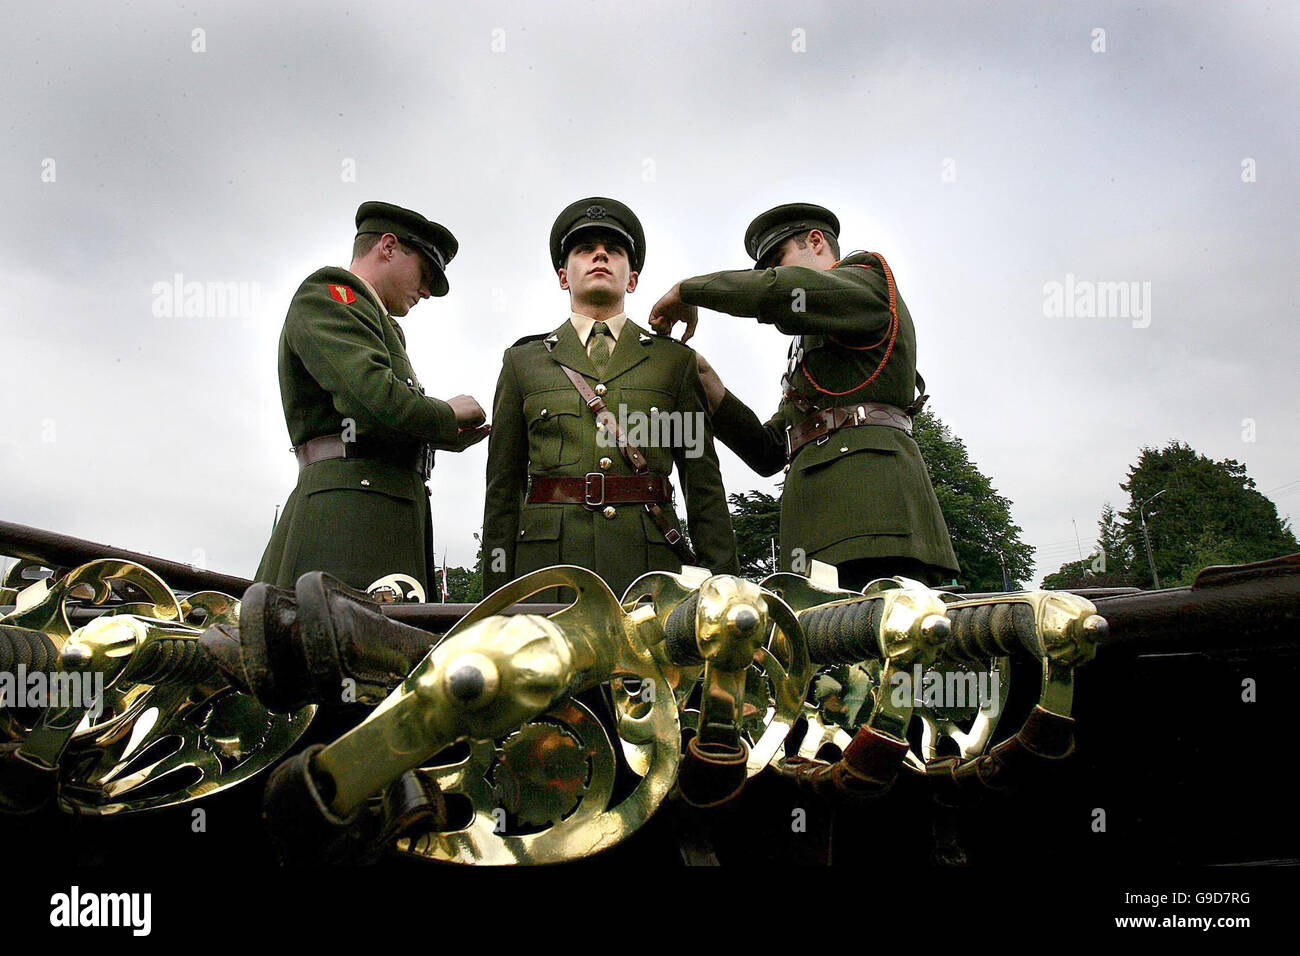 Of Ireland Army Officer Stock Photos & Of Ireland Army Officer Stock on army sworn statement example, army sop examples, army medical corps, army recruiting application, army letter of acceptance, army privacy act statement, direct deposit sign-up form, army personal data sheet, sample direct deposit form, employee action form, army counseling examples, blank employee incident report form, army code of conduct, army dental corps, army home, army trips form.pdf, army letter of application, sales tax exemption form, army women's basketball, army military records search,